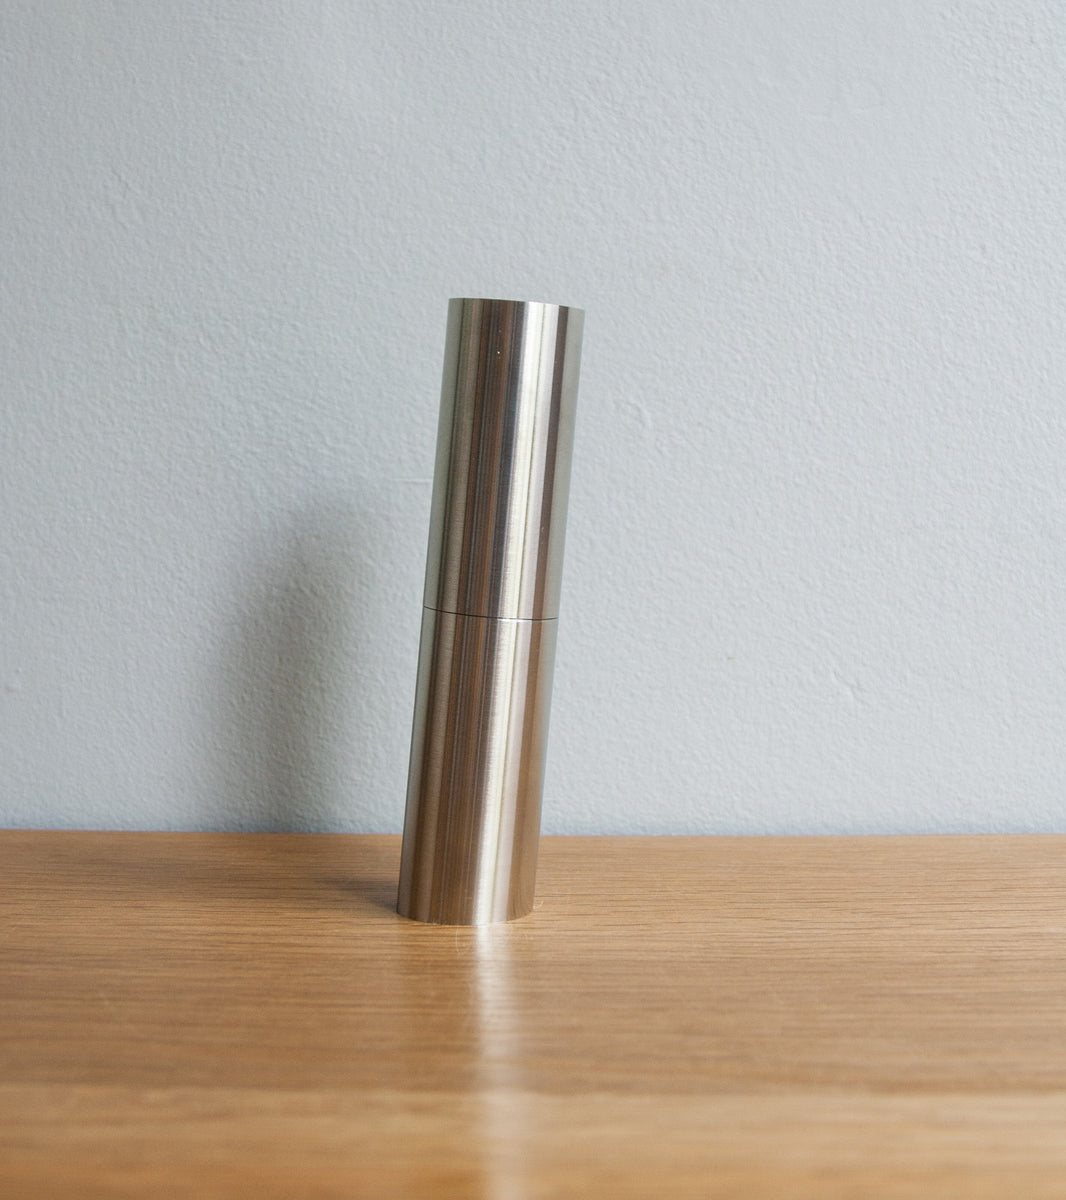 Italic Mill - Matt Nickel Plated Michael Anastassiades & Carl Auböck - Image 1